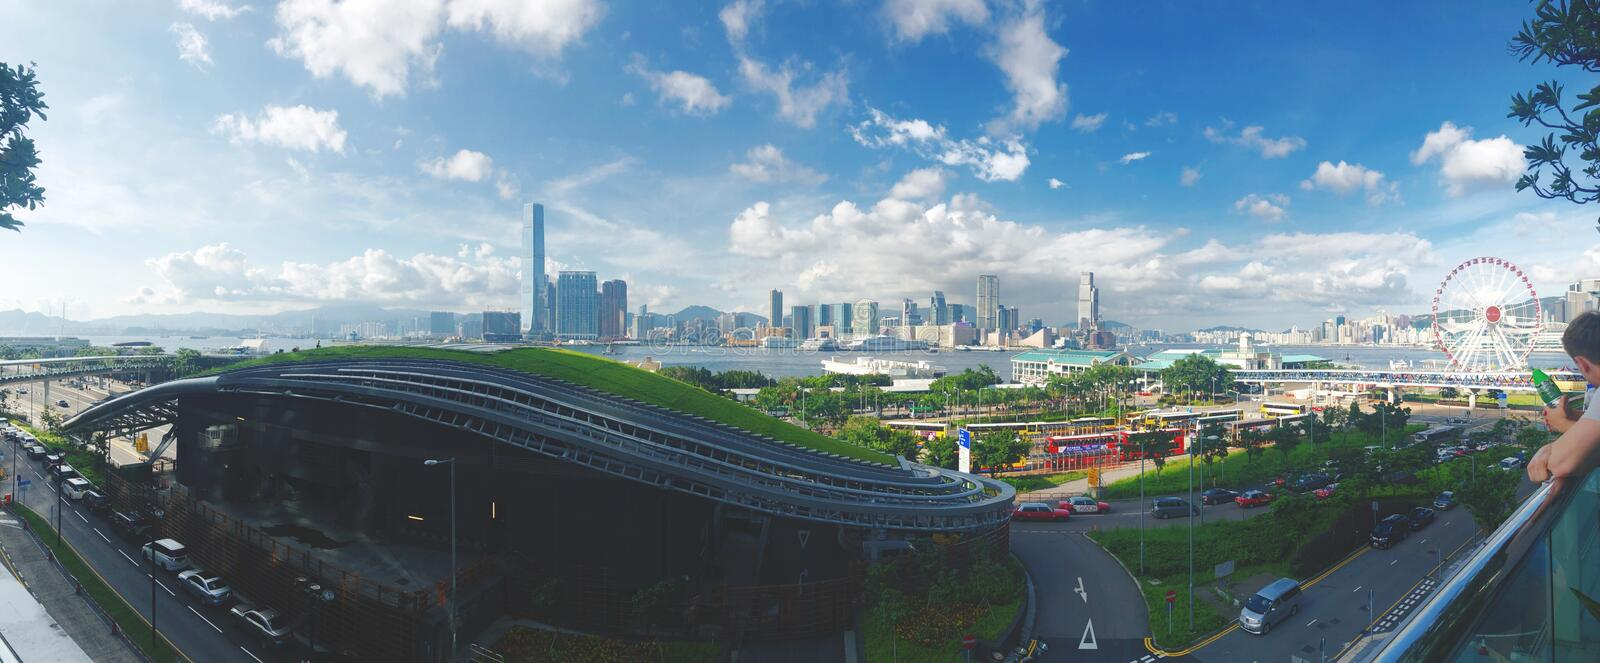 Nice weather in hongkong stock photography